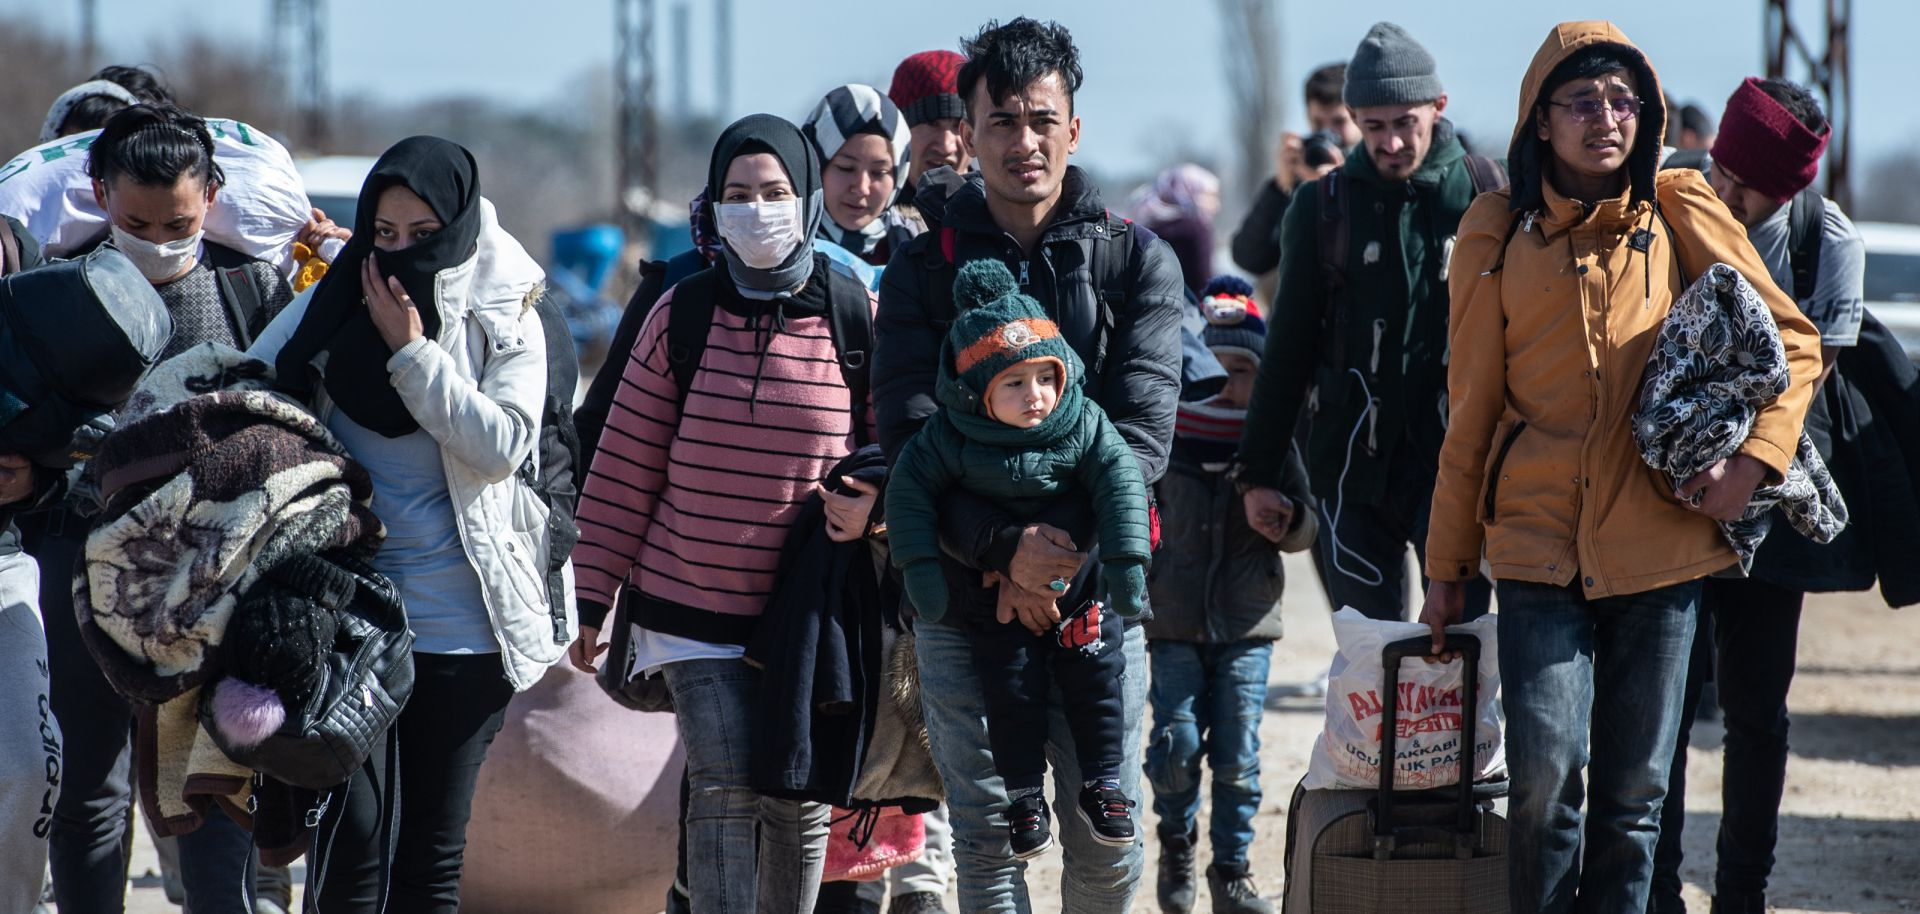 Amid the turmoil in Afghanistan, Turkish politicians are sounding the alarm over another migrant surge, while others are taking steps to discriminate against those already in the country.